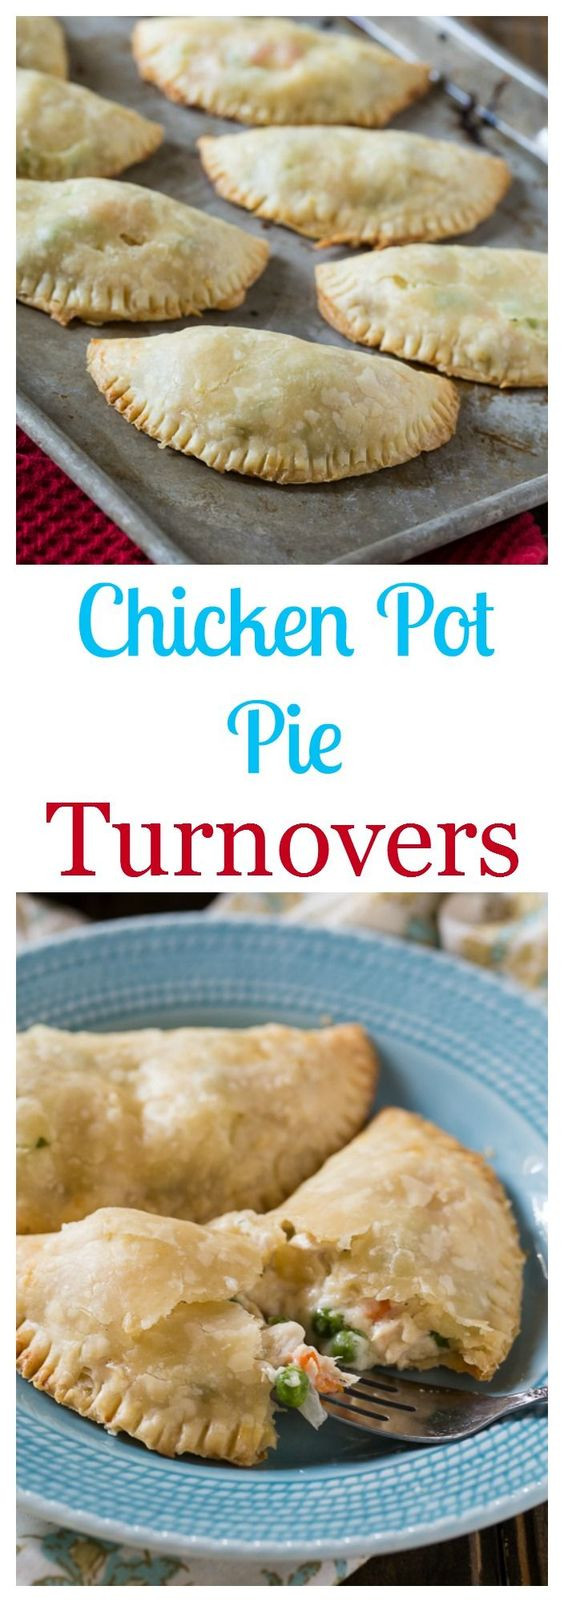 Dinner Recipes Using Pie Crust  Pinterest • The world's catalog of ideas